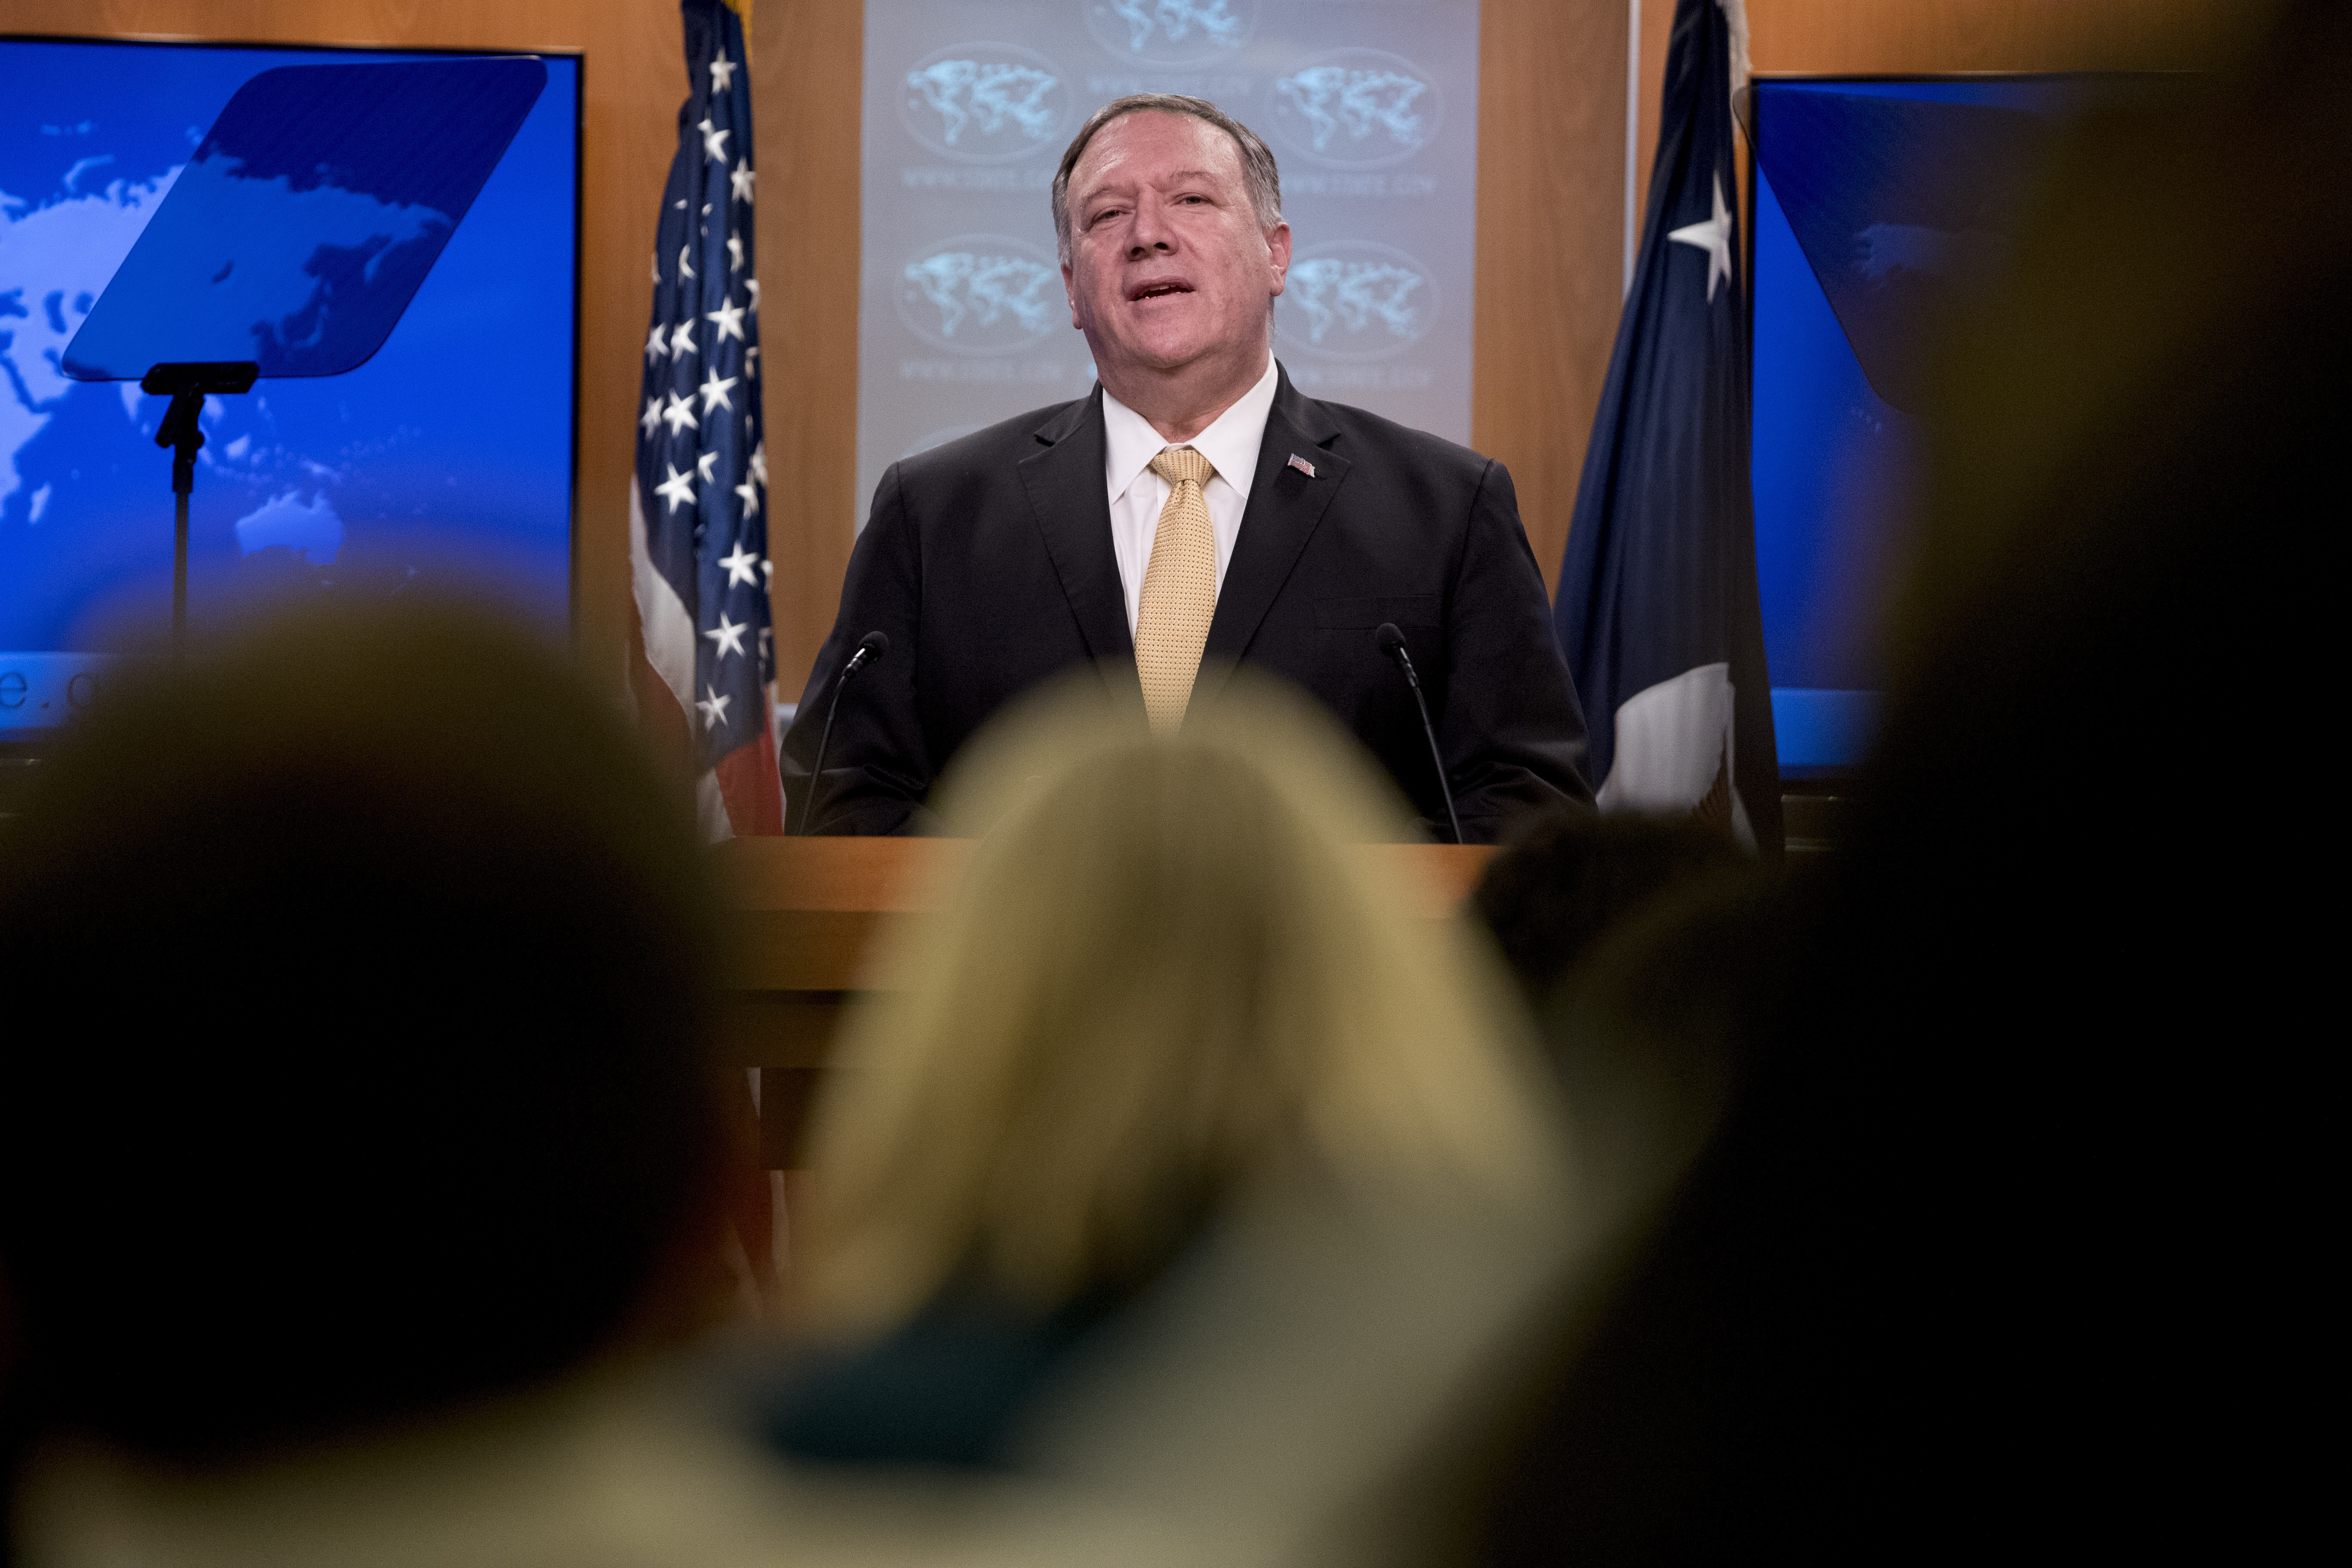 Secretary of State Mike Pompeo speaks at a news conference at the State Department in Washington on Nov. 18, 2019.